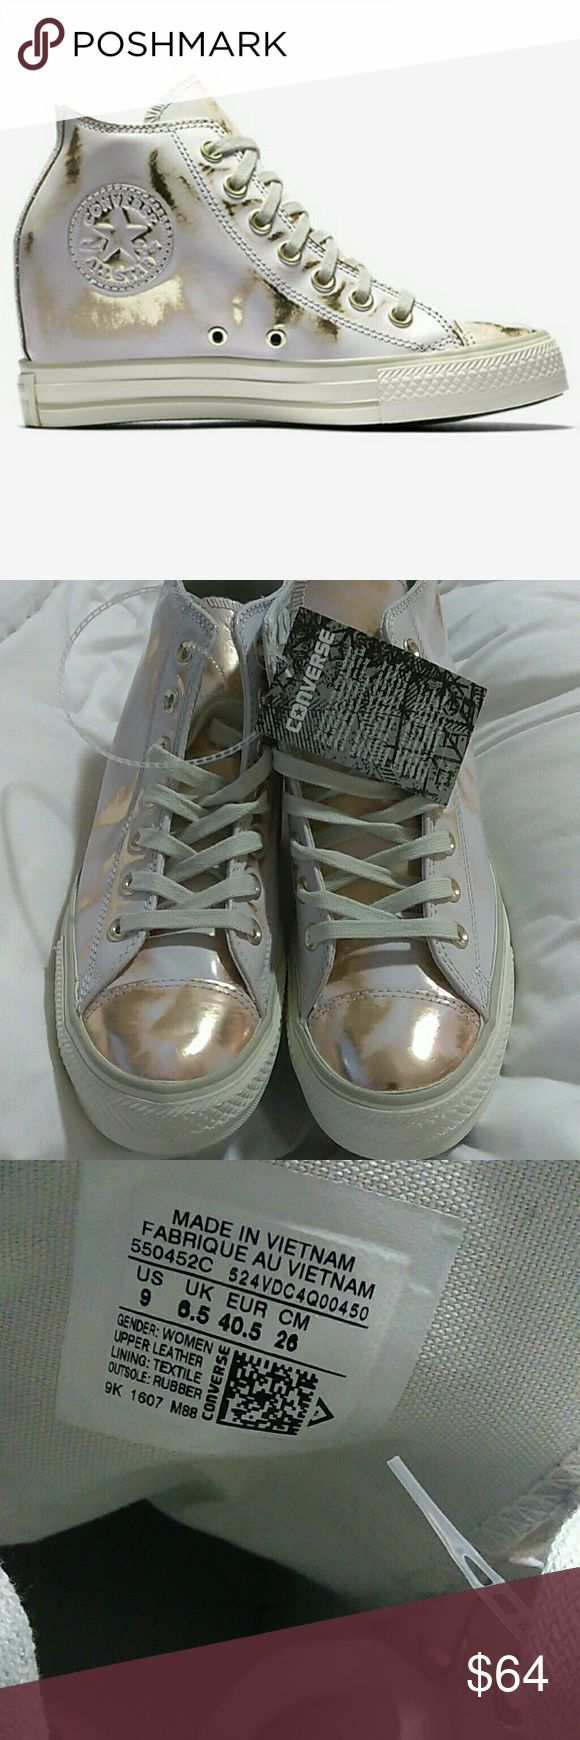 New Converse All Stars Chuck Taylors New Converse Chuck Taylor All Star Lux Brush Off Leather Hidden Wedge Sneakers. Stand tall. Shine on. New without box. Converse Shoes Athletic Shoes